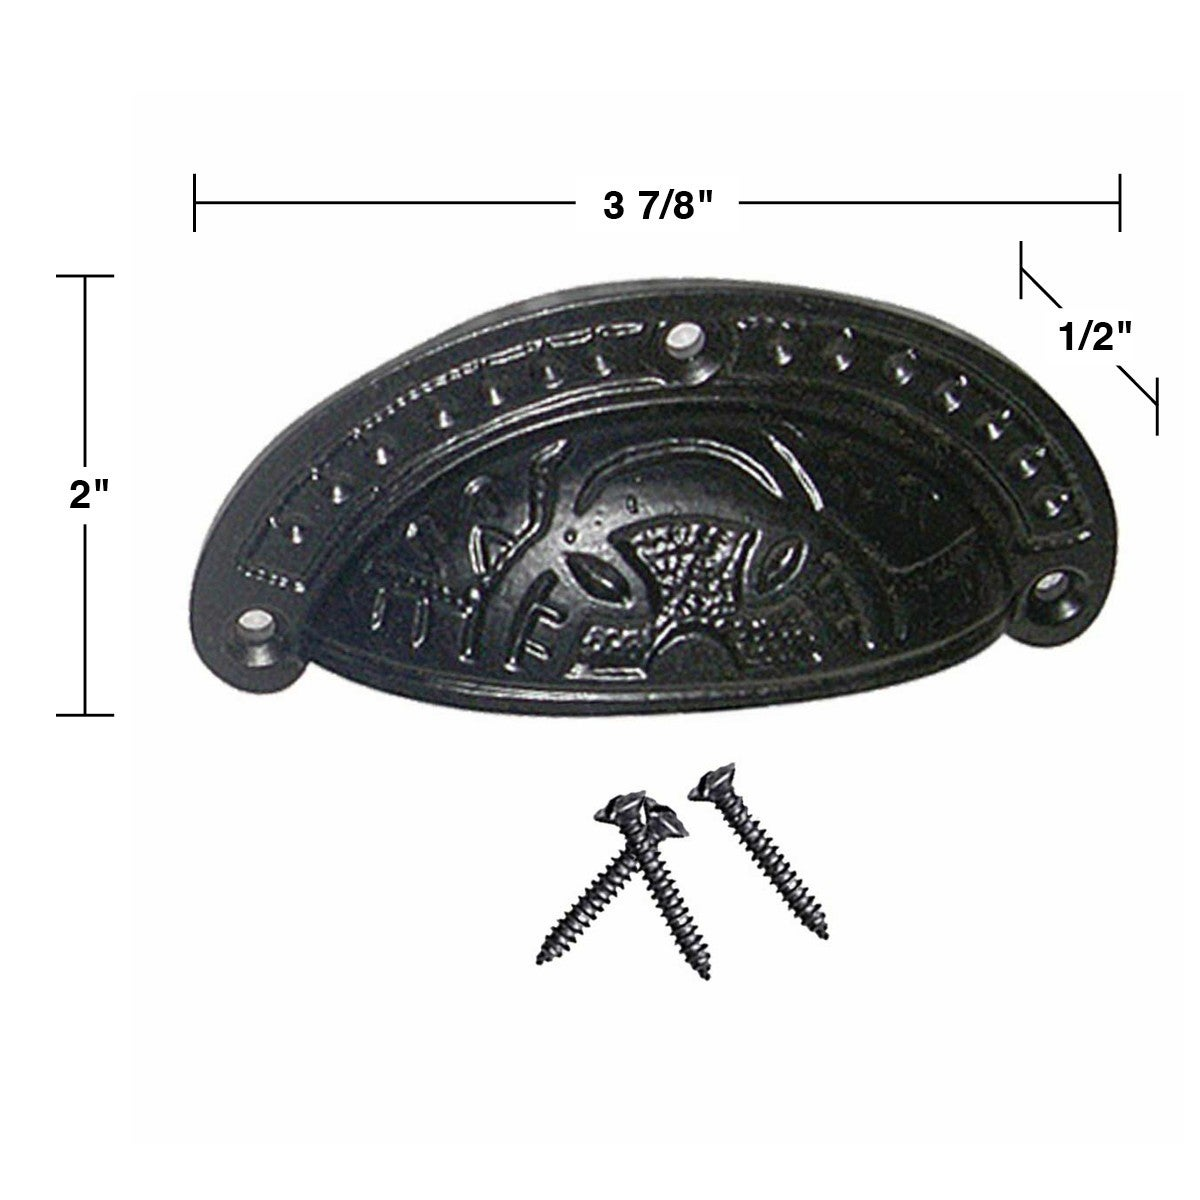 6 Cabinet Or Drawer Bin Pull Black Iron Cup Pulls 3 7 8 Inch On Free Shipping Orders Over 45 14054903